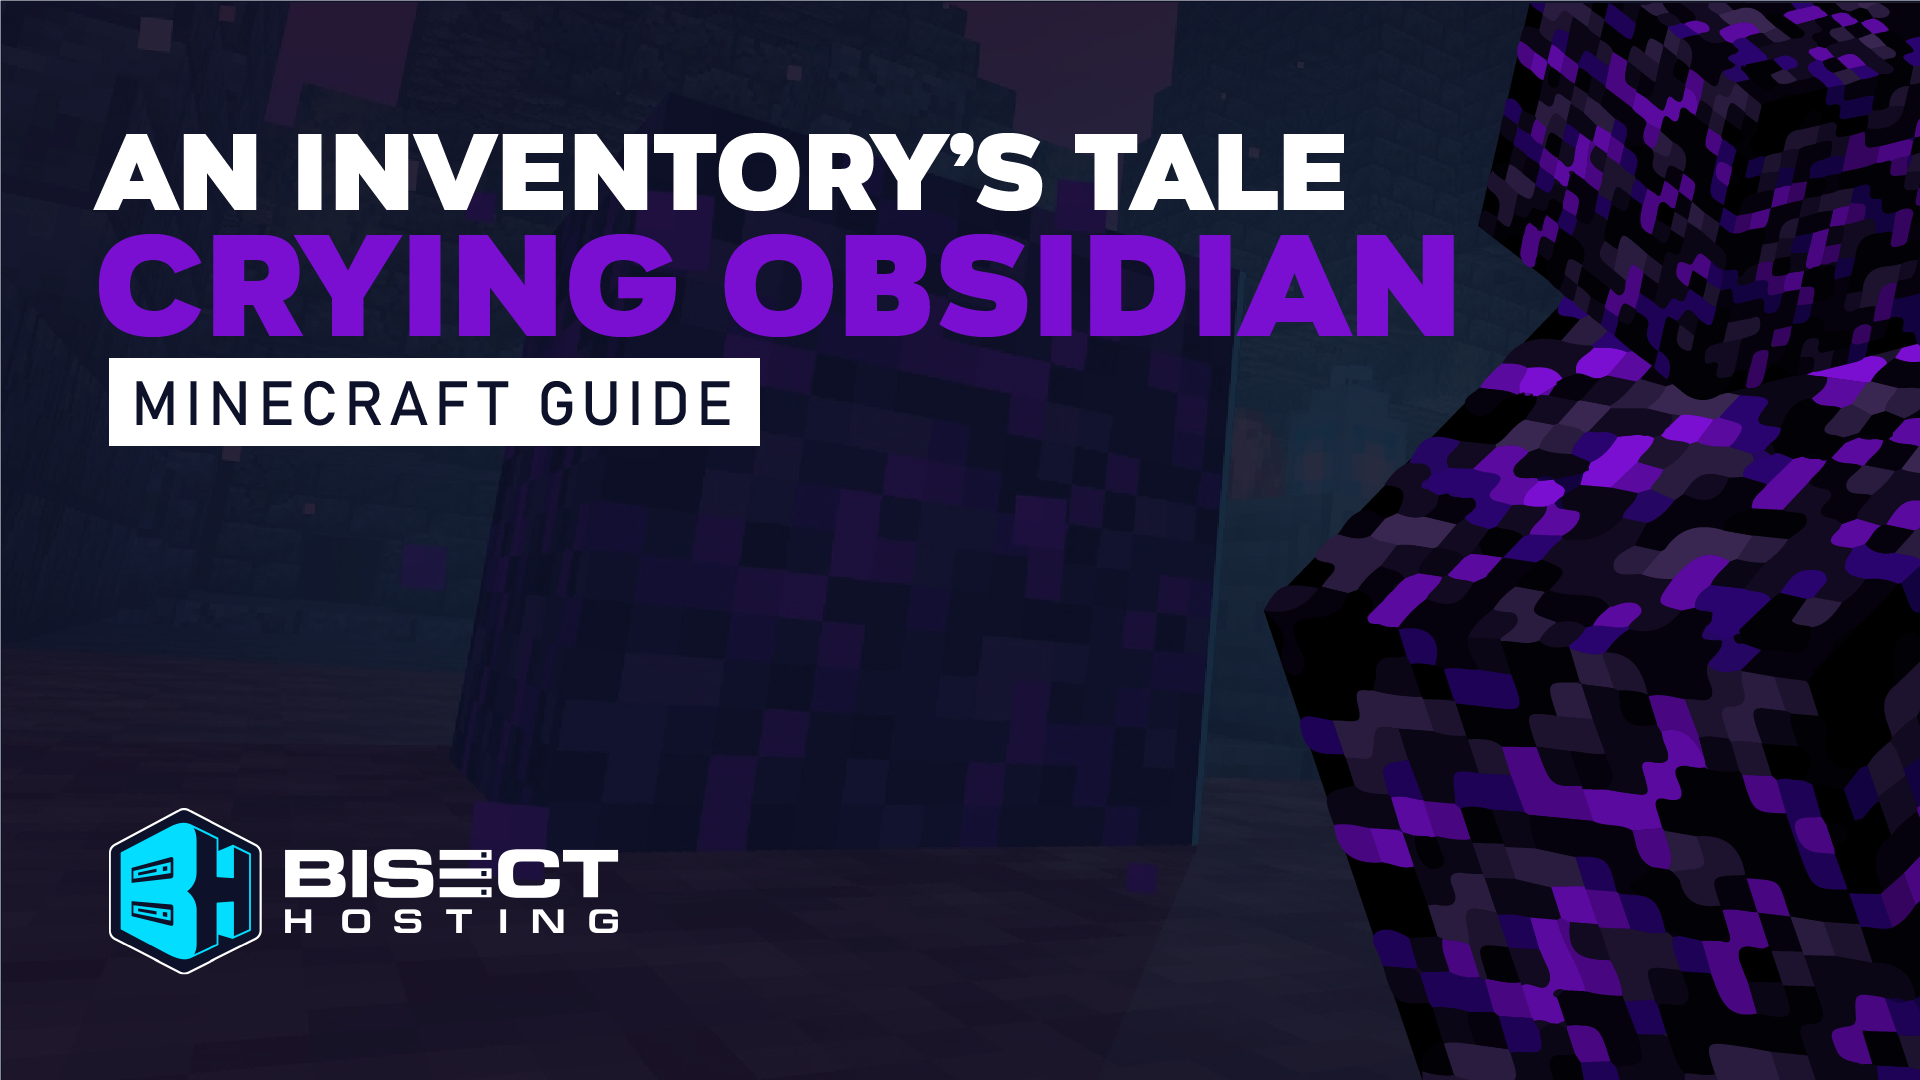 An Inventory's Tale: Crying Obsidian